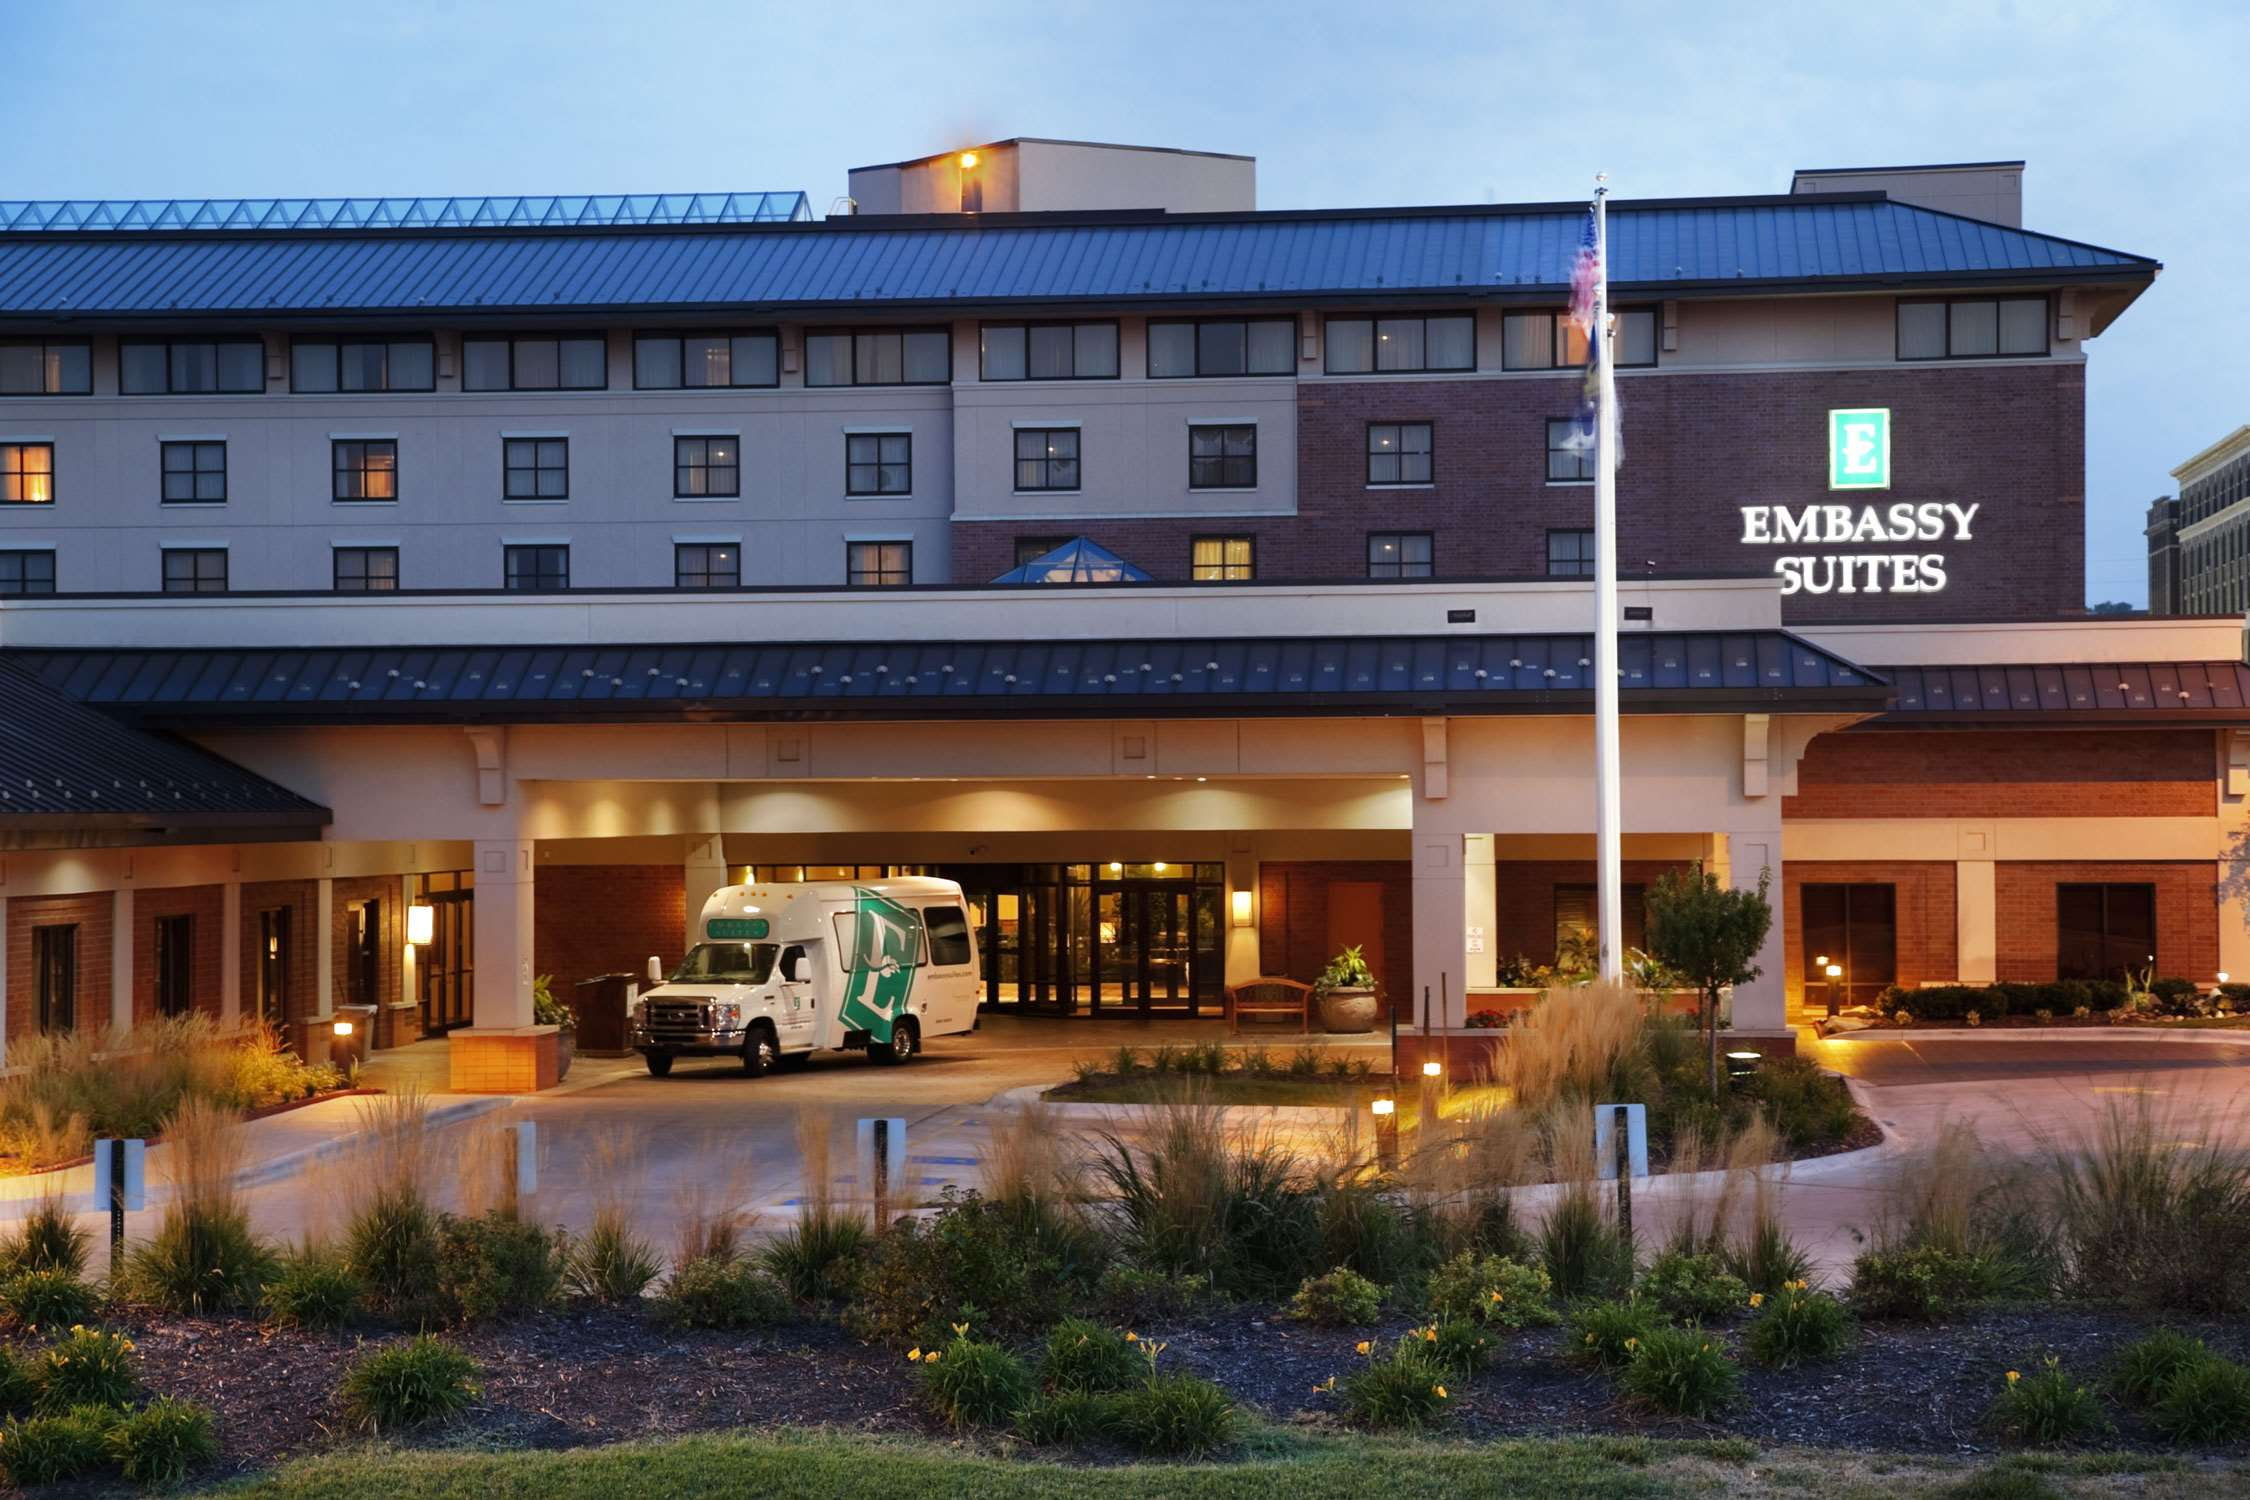 Embassy Suites by Hilton Omaha Downtown Old Market